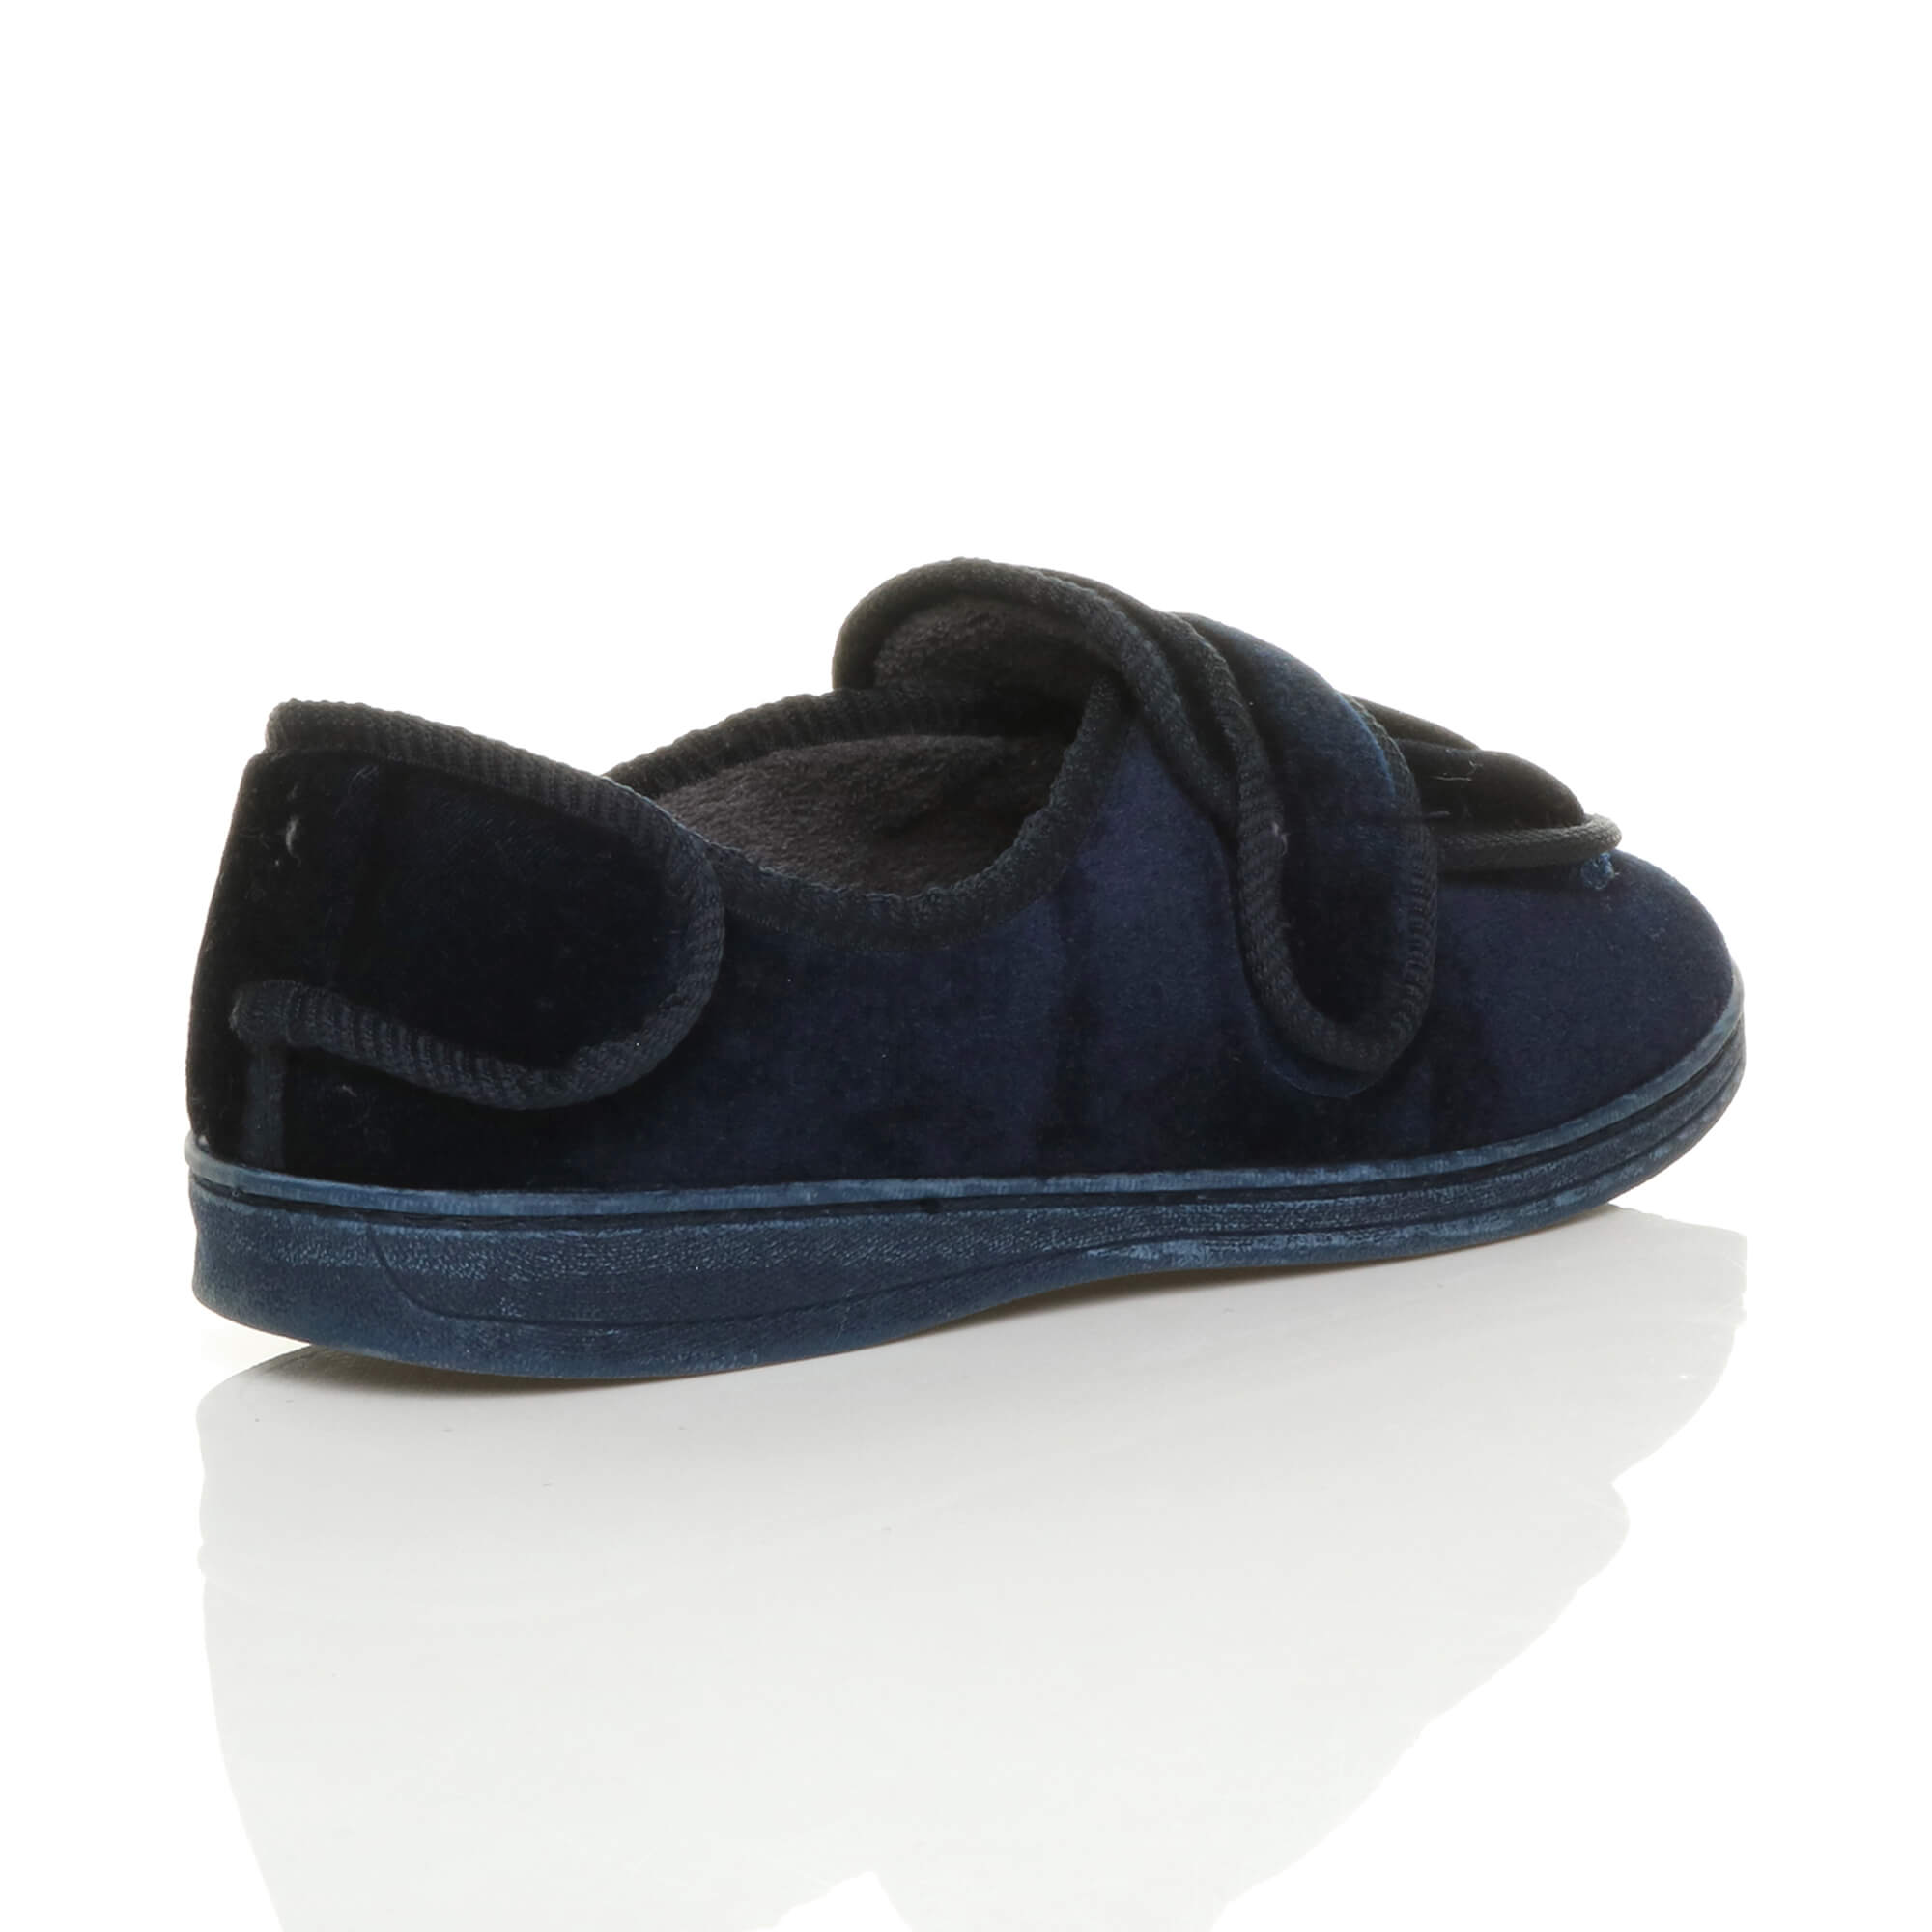 Wide Mens House Shoes